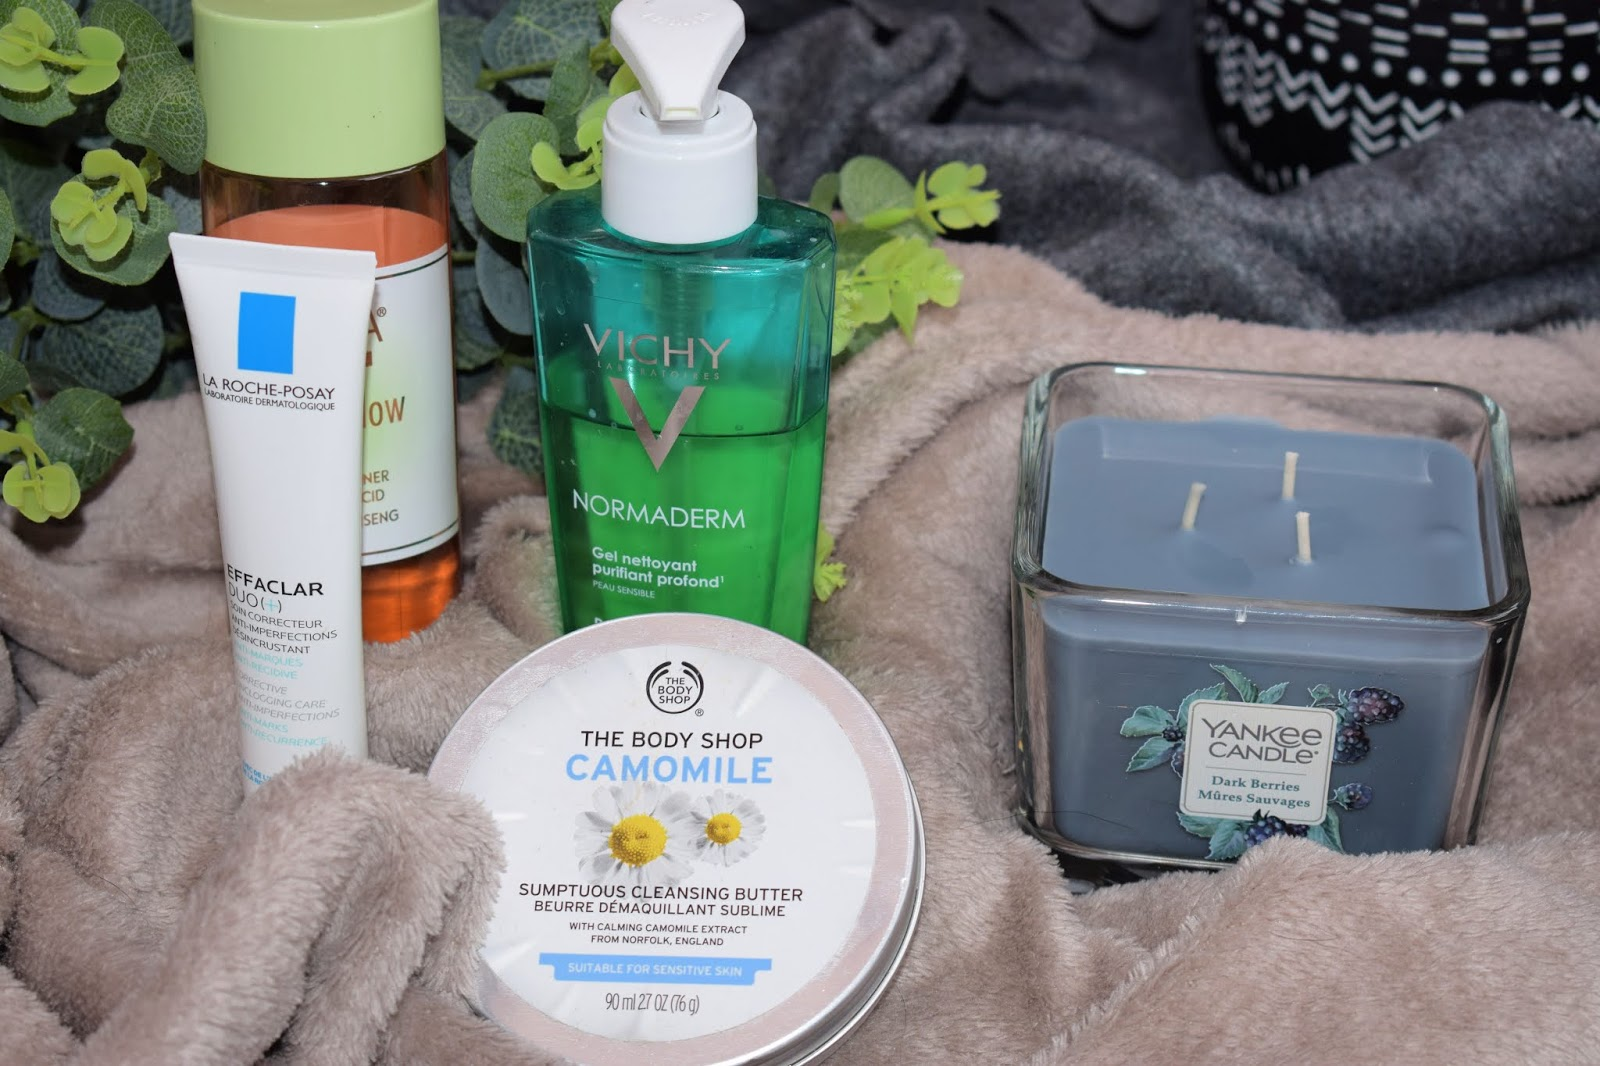 My favourite affordable skincare for my combination/oily skin